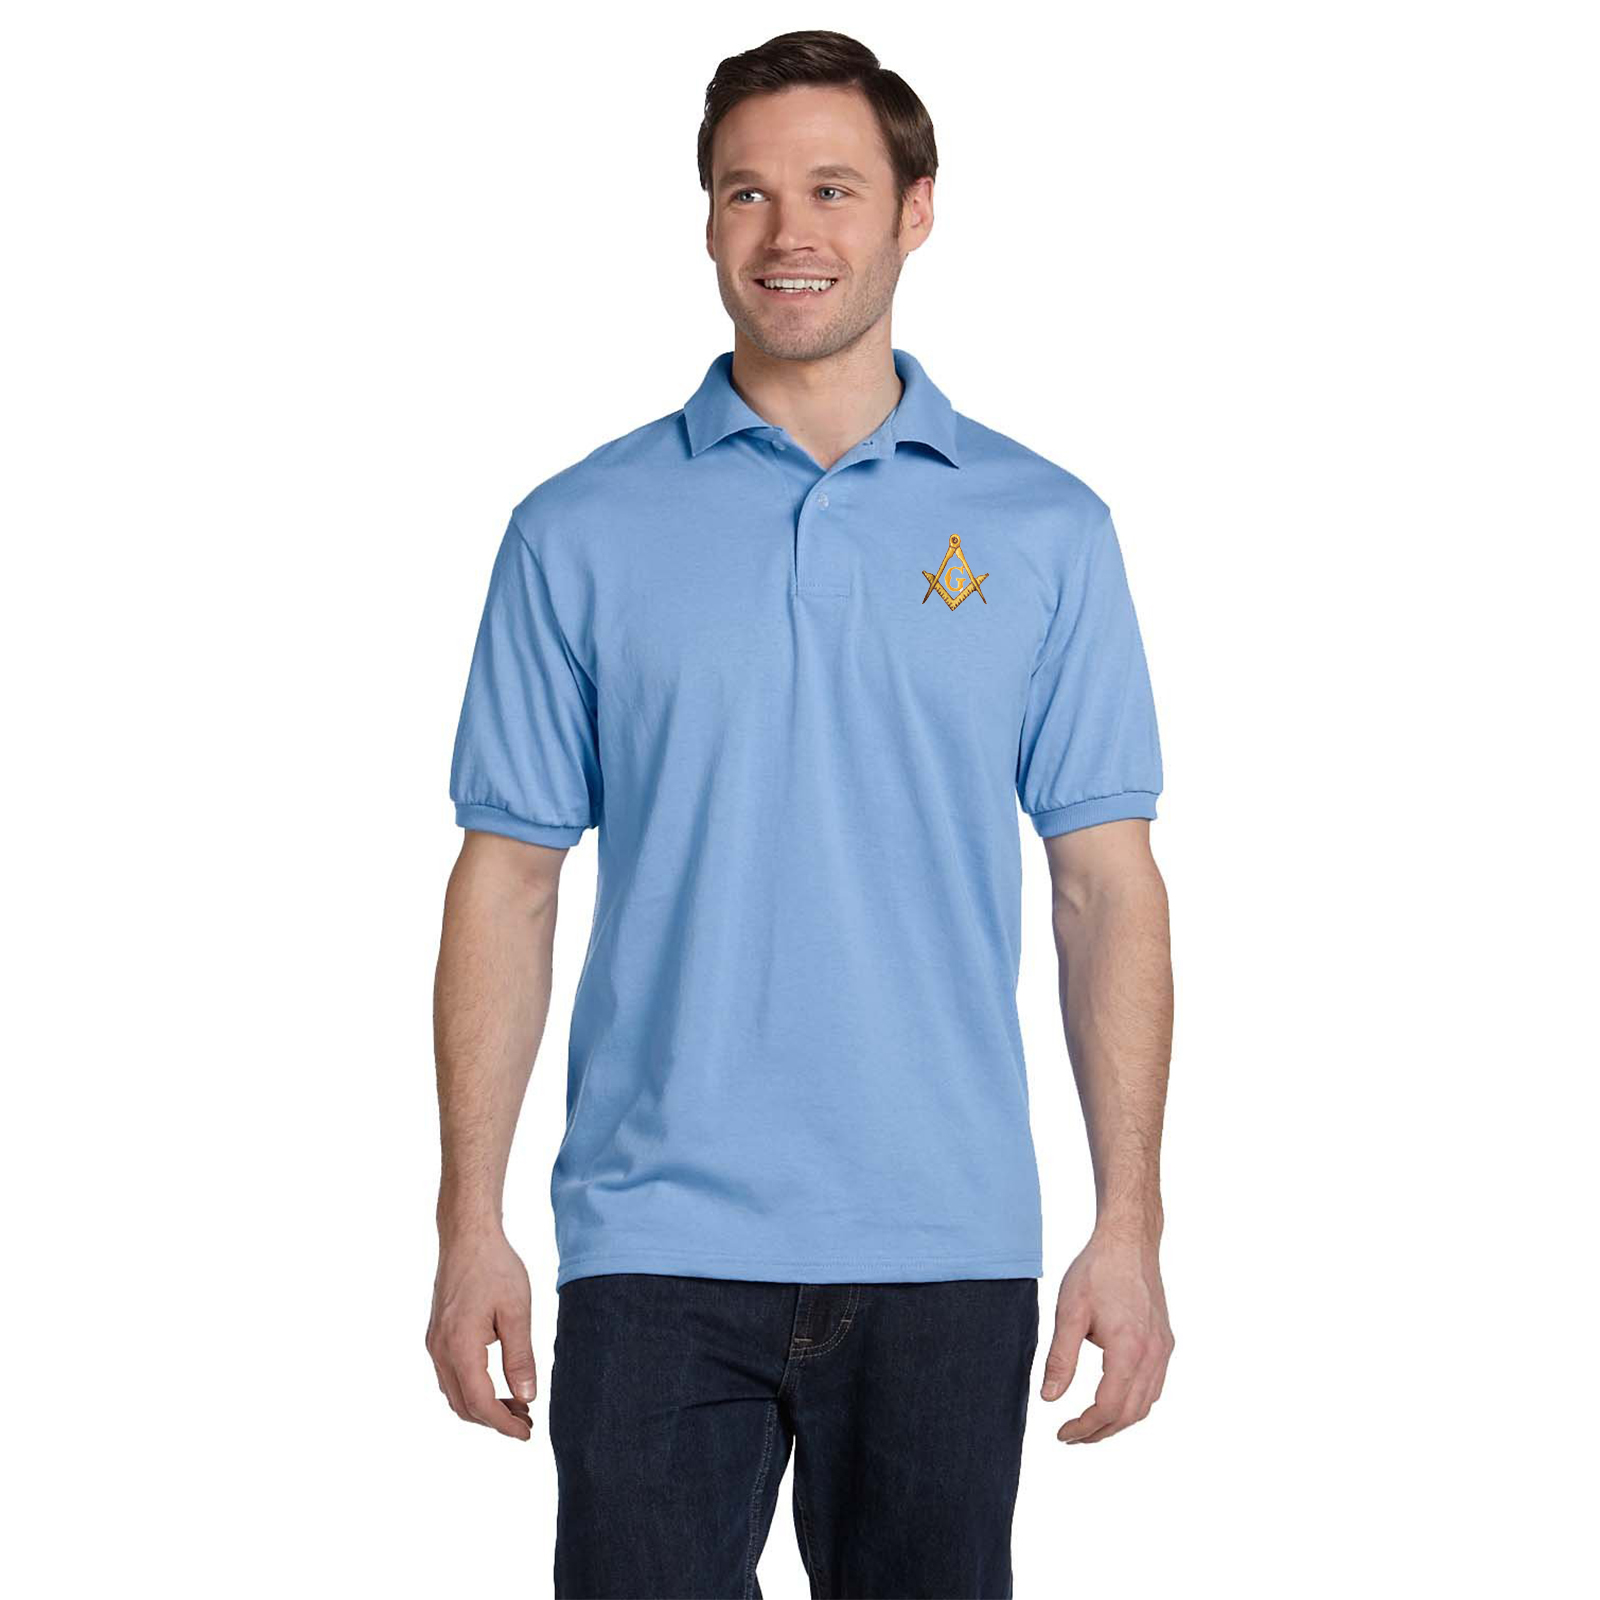 Gold Square & Compass Embroidered Masonic Men's Polo Shirt